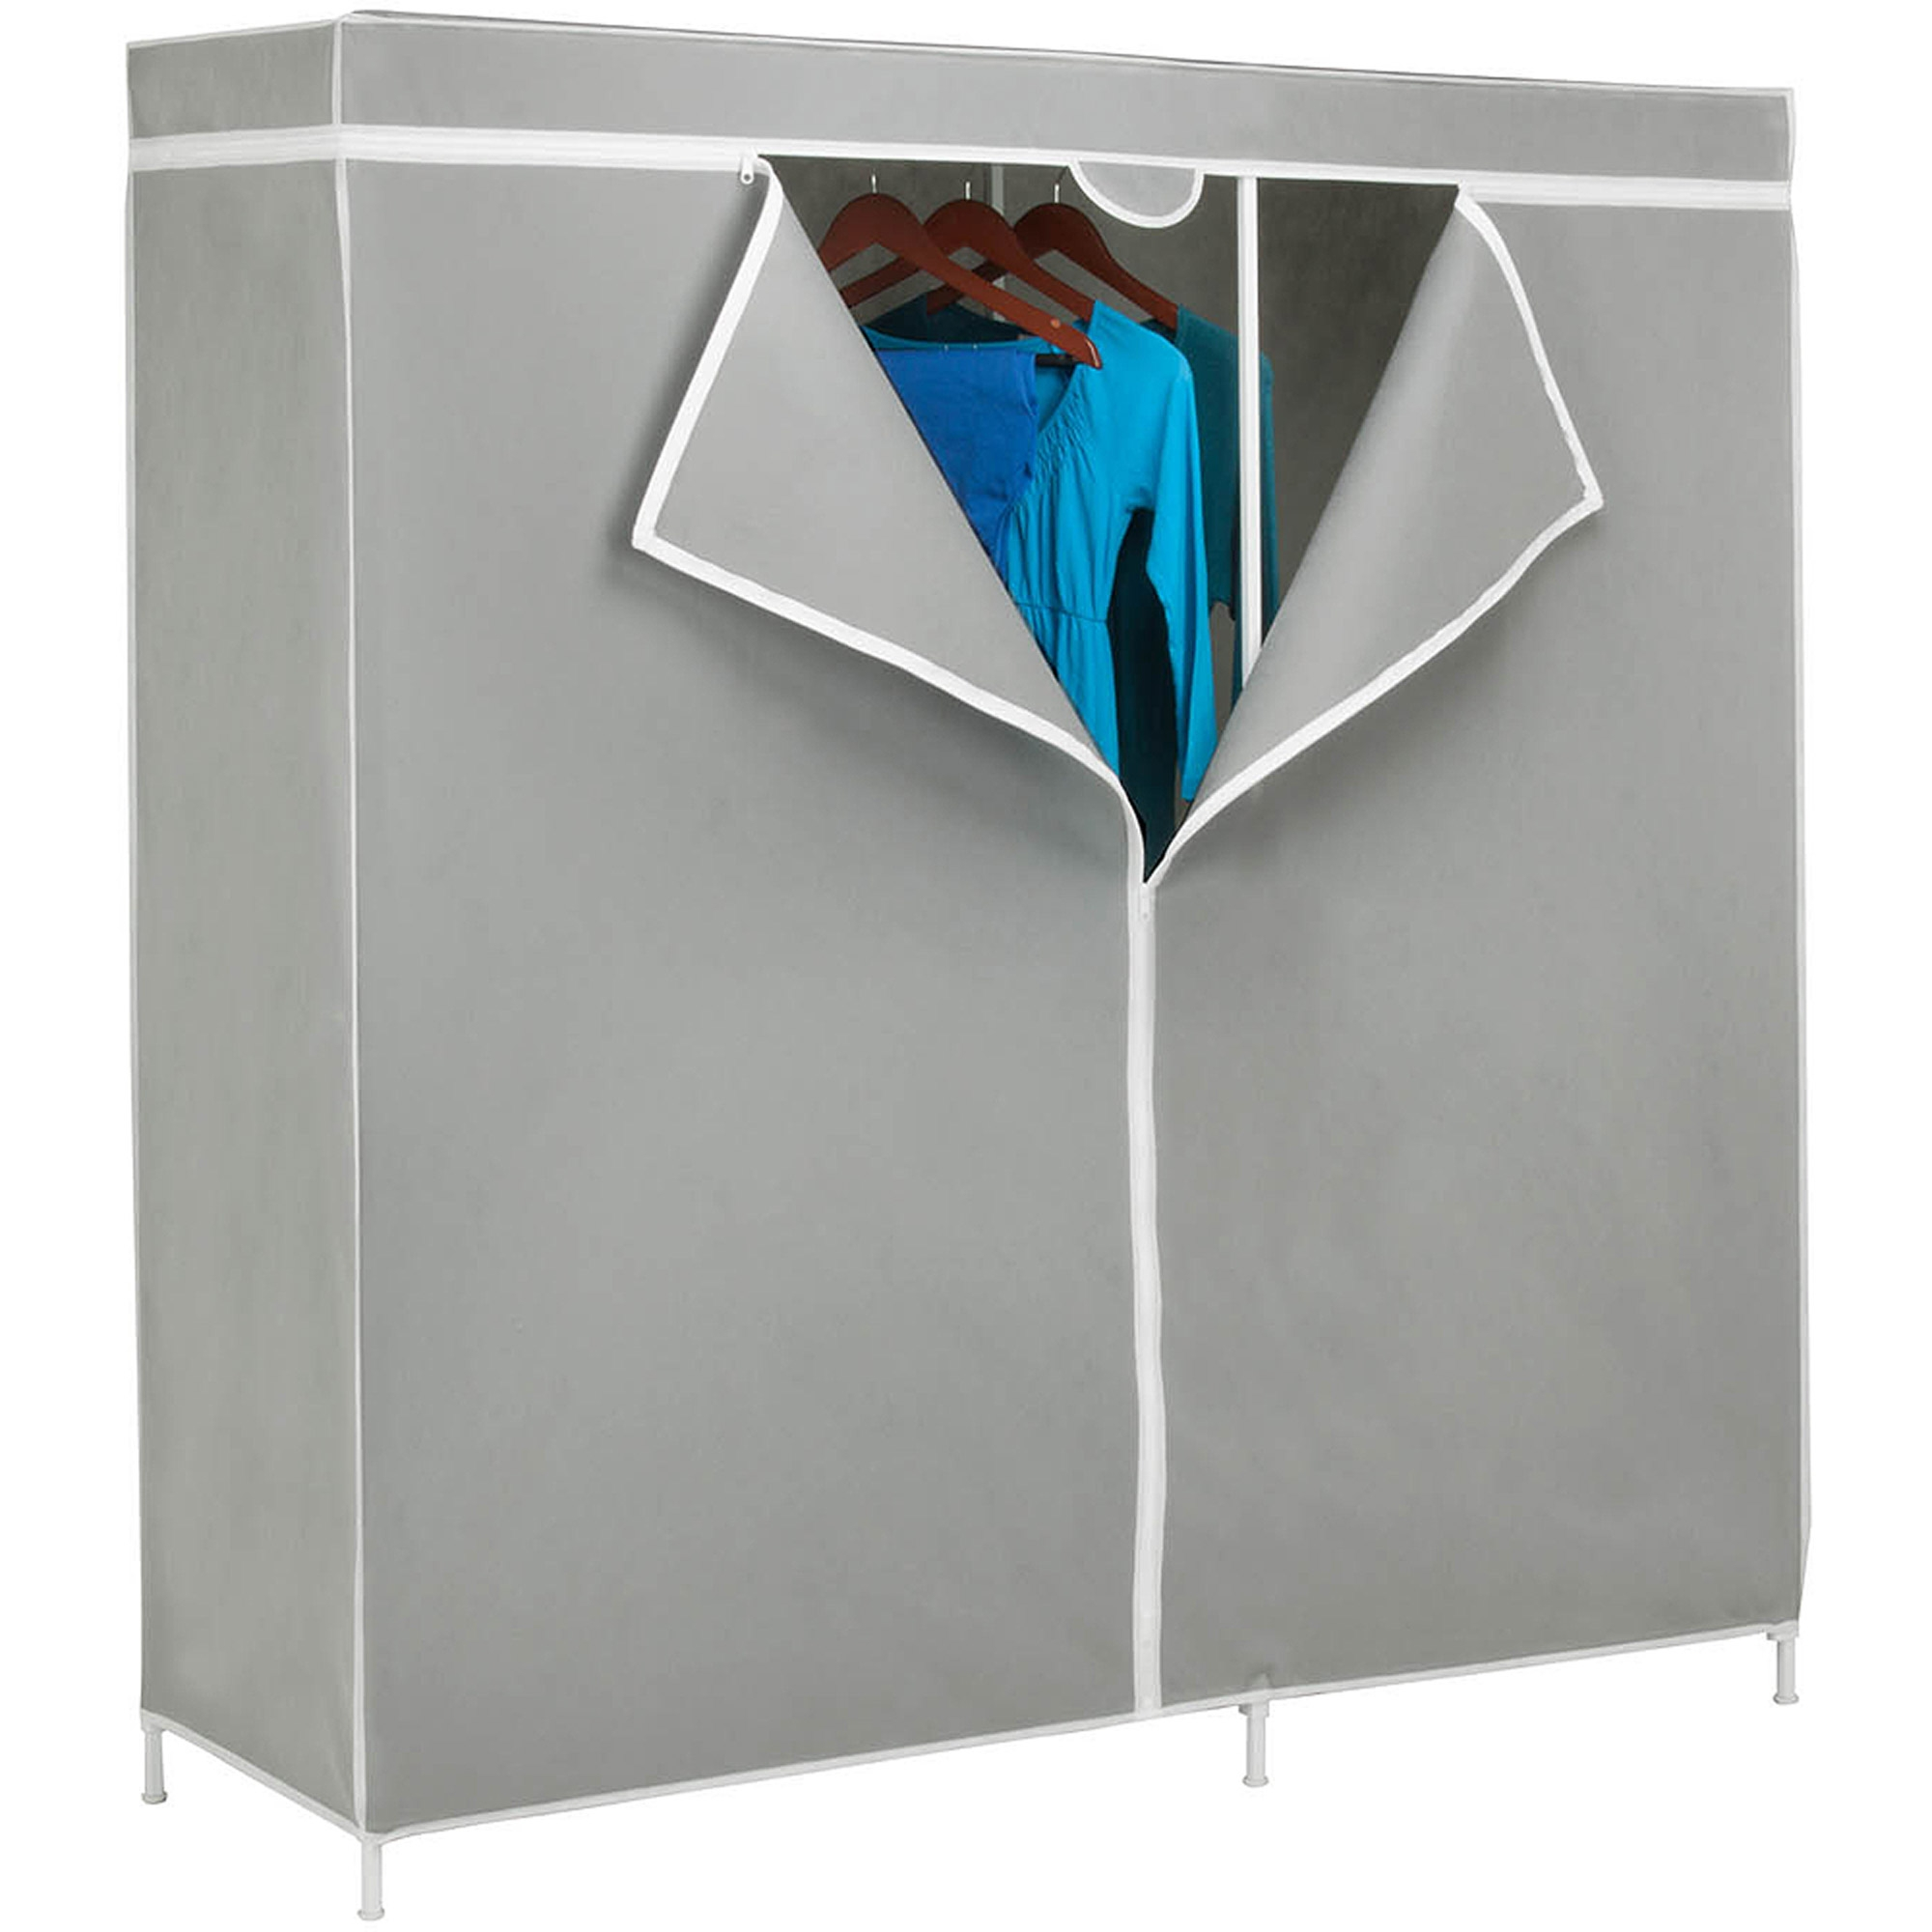 Wardrobe Closets Pertaining To Mobile Wardrobe Cabinets (Image 24 of 25)